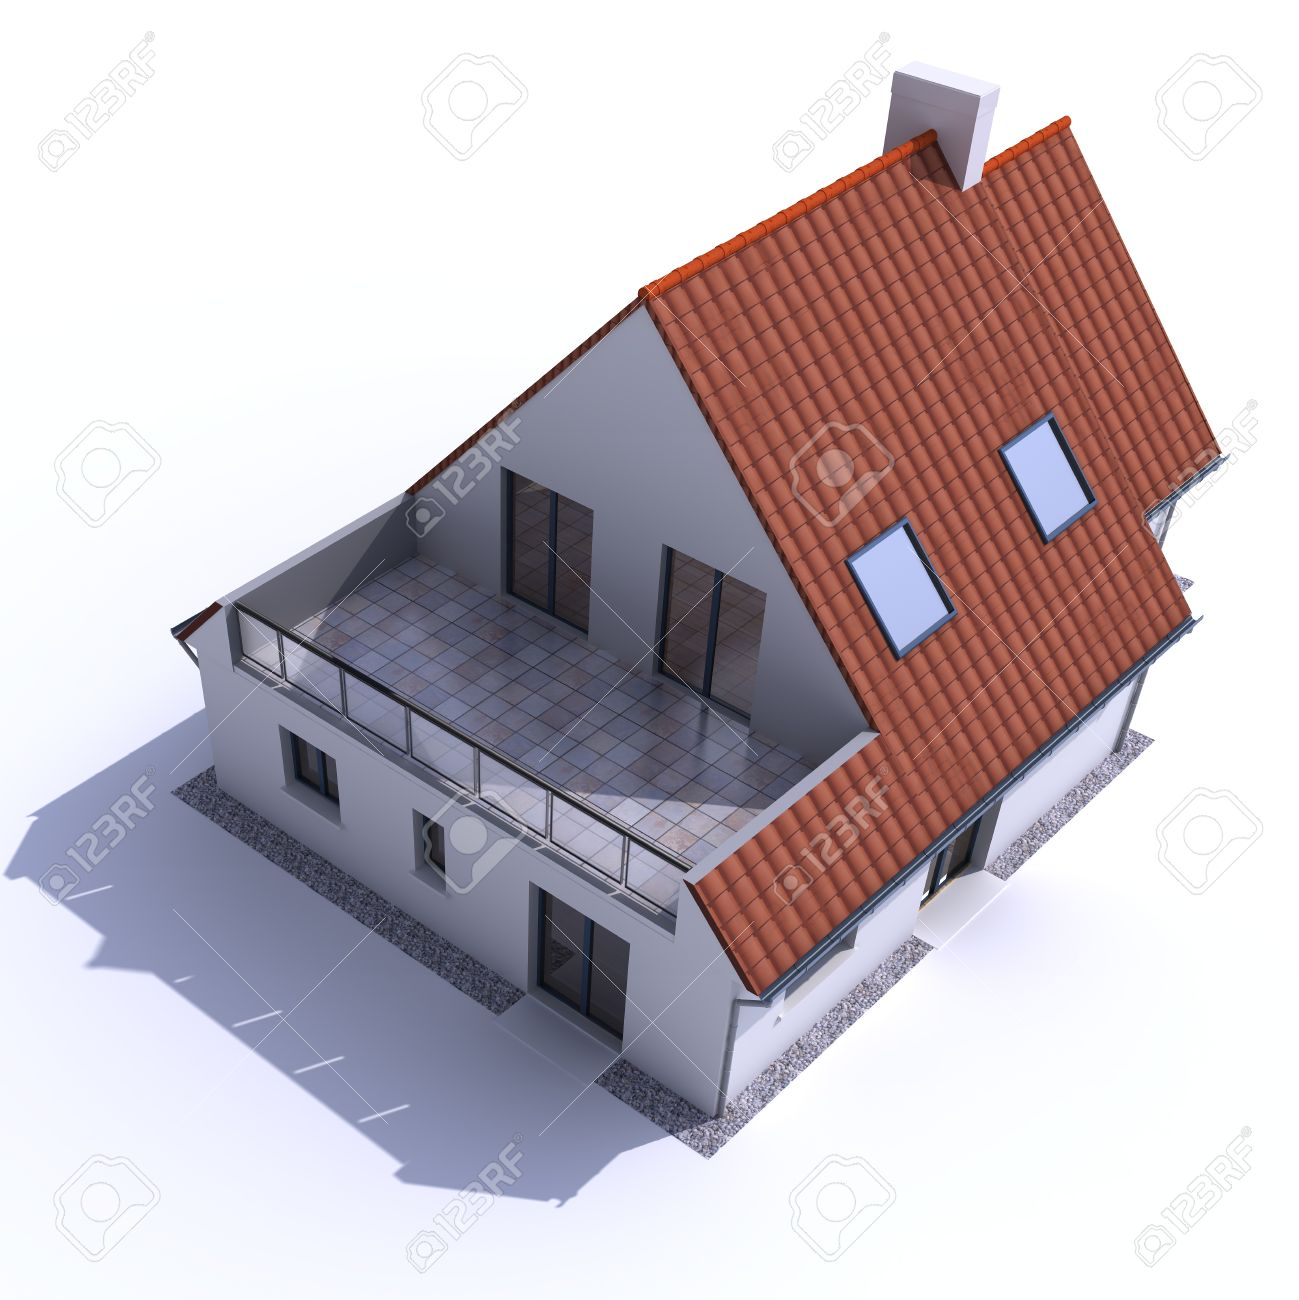 3D architecture model of a house, aerial view Stock Photo - 13354702